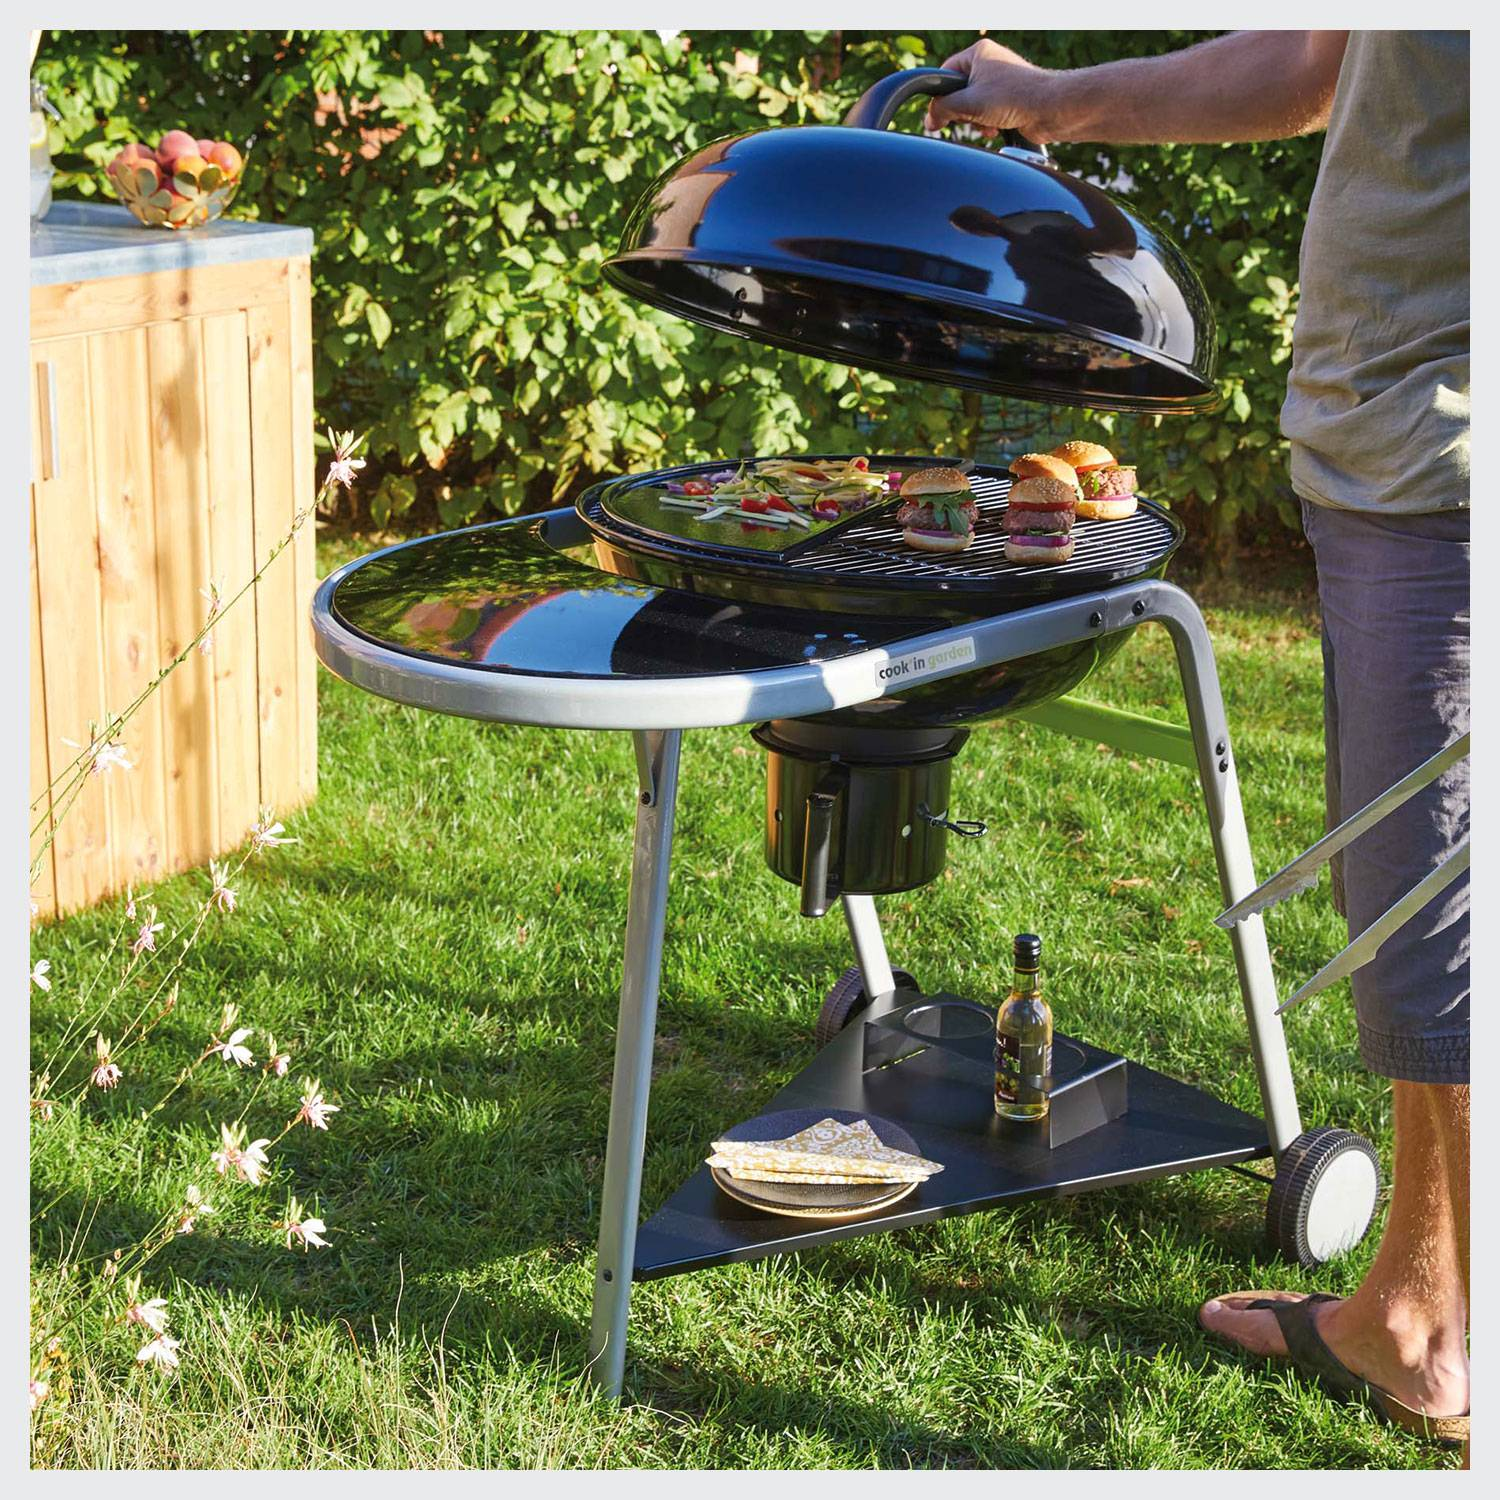 Cook'in Garden - Barbecue au charbon de bois TONINO 2